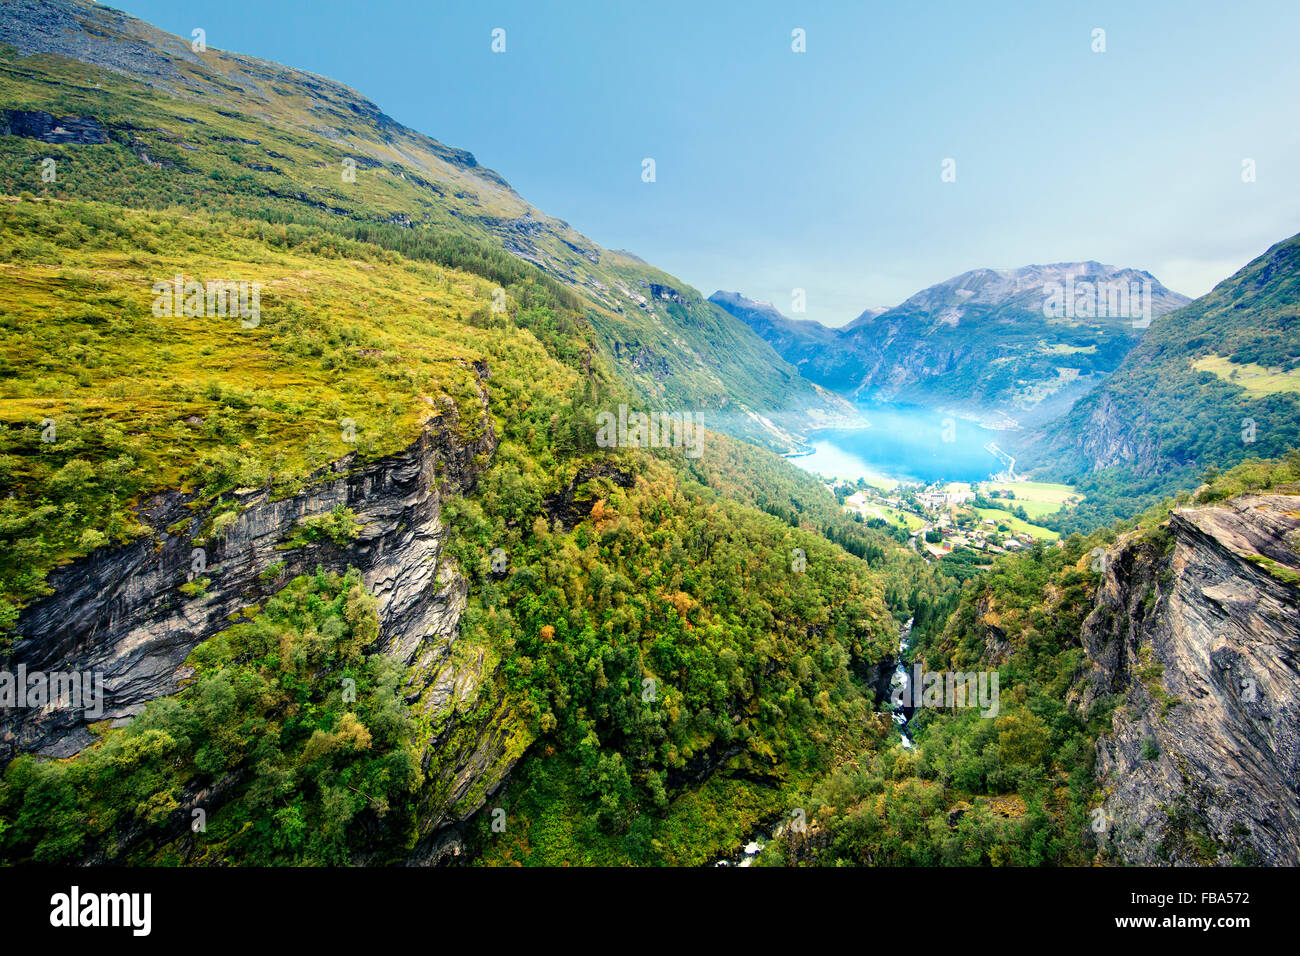 Norway, More og Romsdal, Sunnmore, Geiranger, View along wooded canyon with misty lake - Stock Image